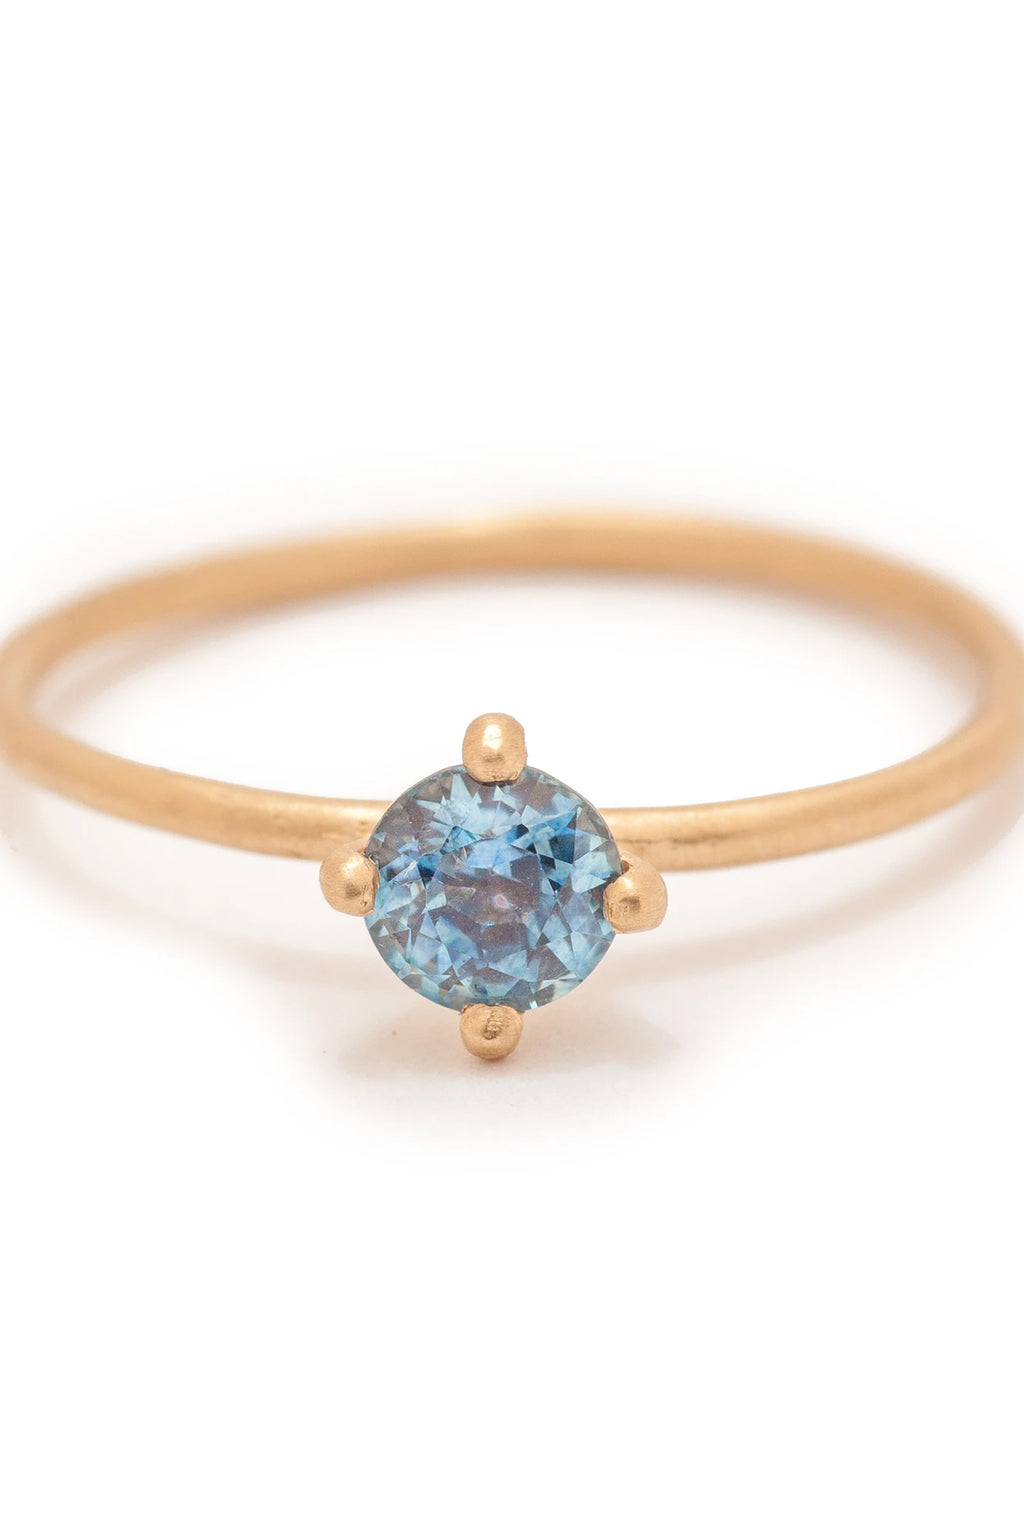 Valley Rose 14k Gold Atlantis #2 Solitaire Ring in Montana Sapphire